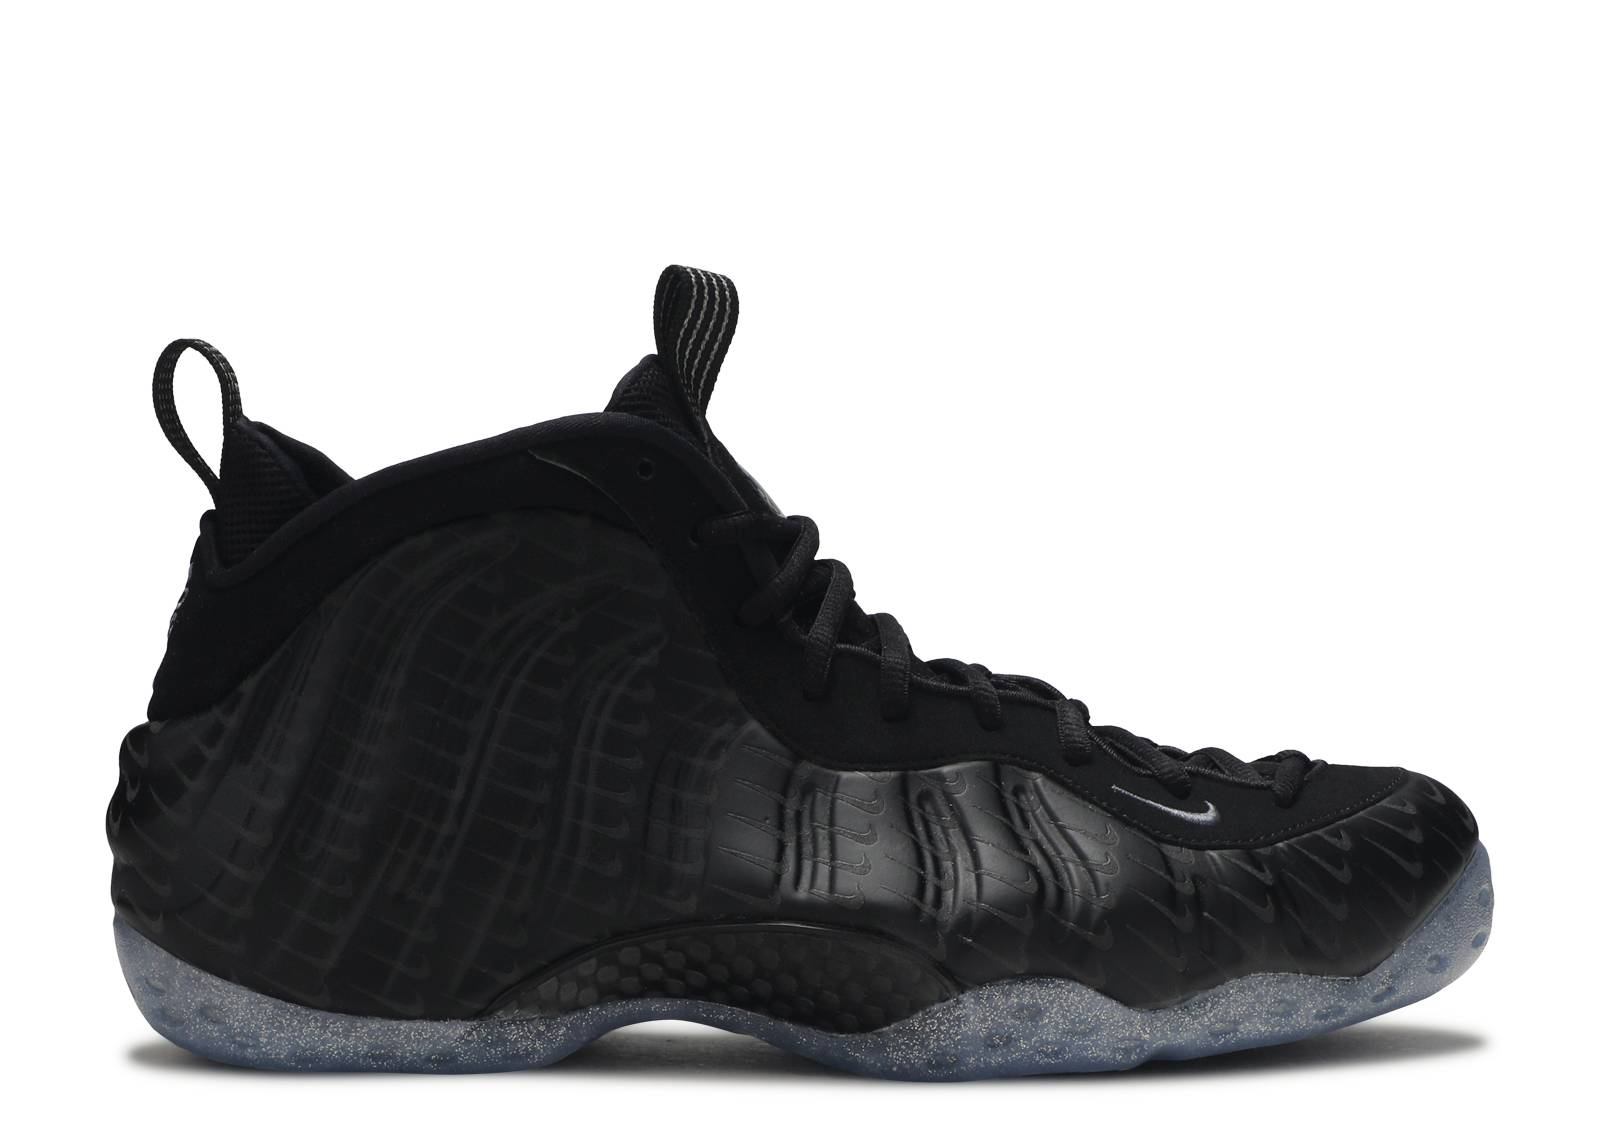 Nike Nike Air Foamposite One pewter? Grailed